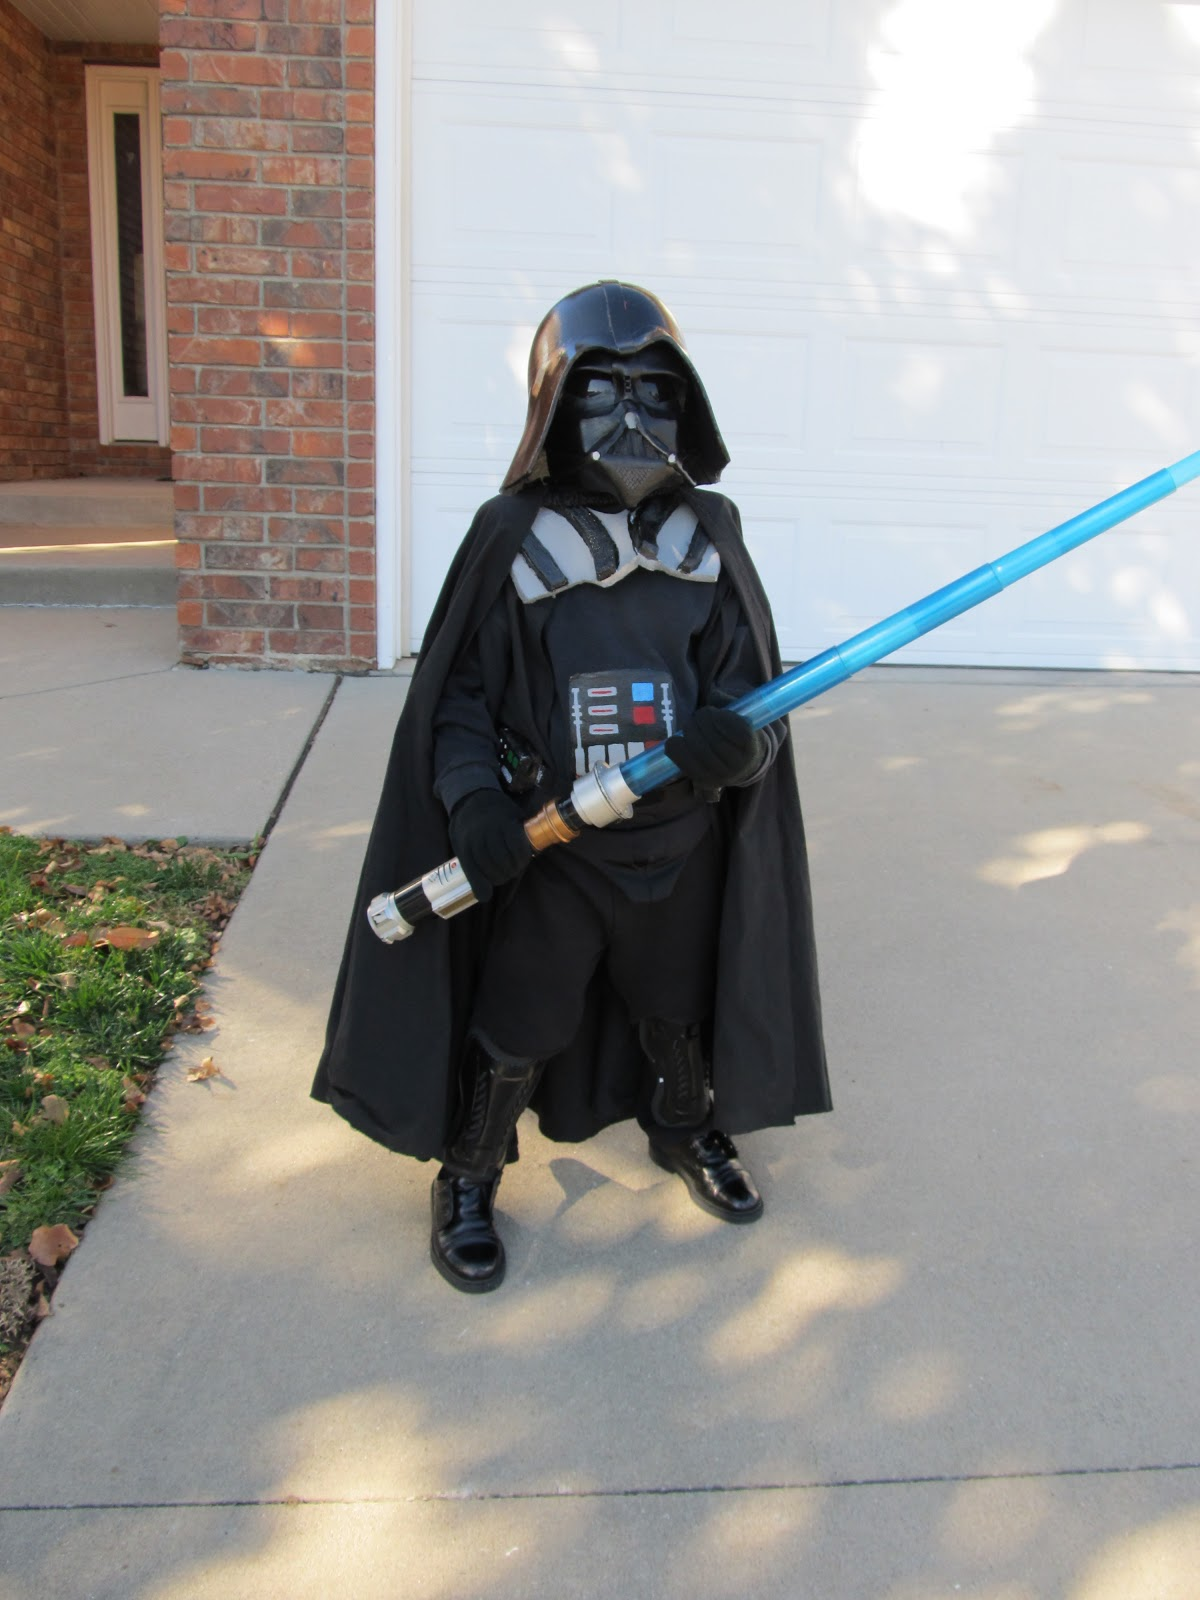 diy project crazy home made darth vader costume. Black Bedroom Furniture Sets. Home Design Ideas